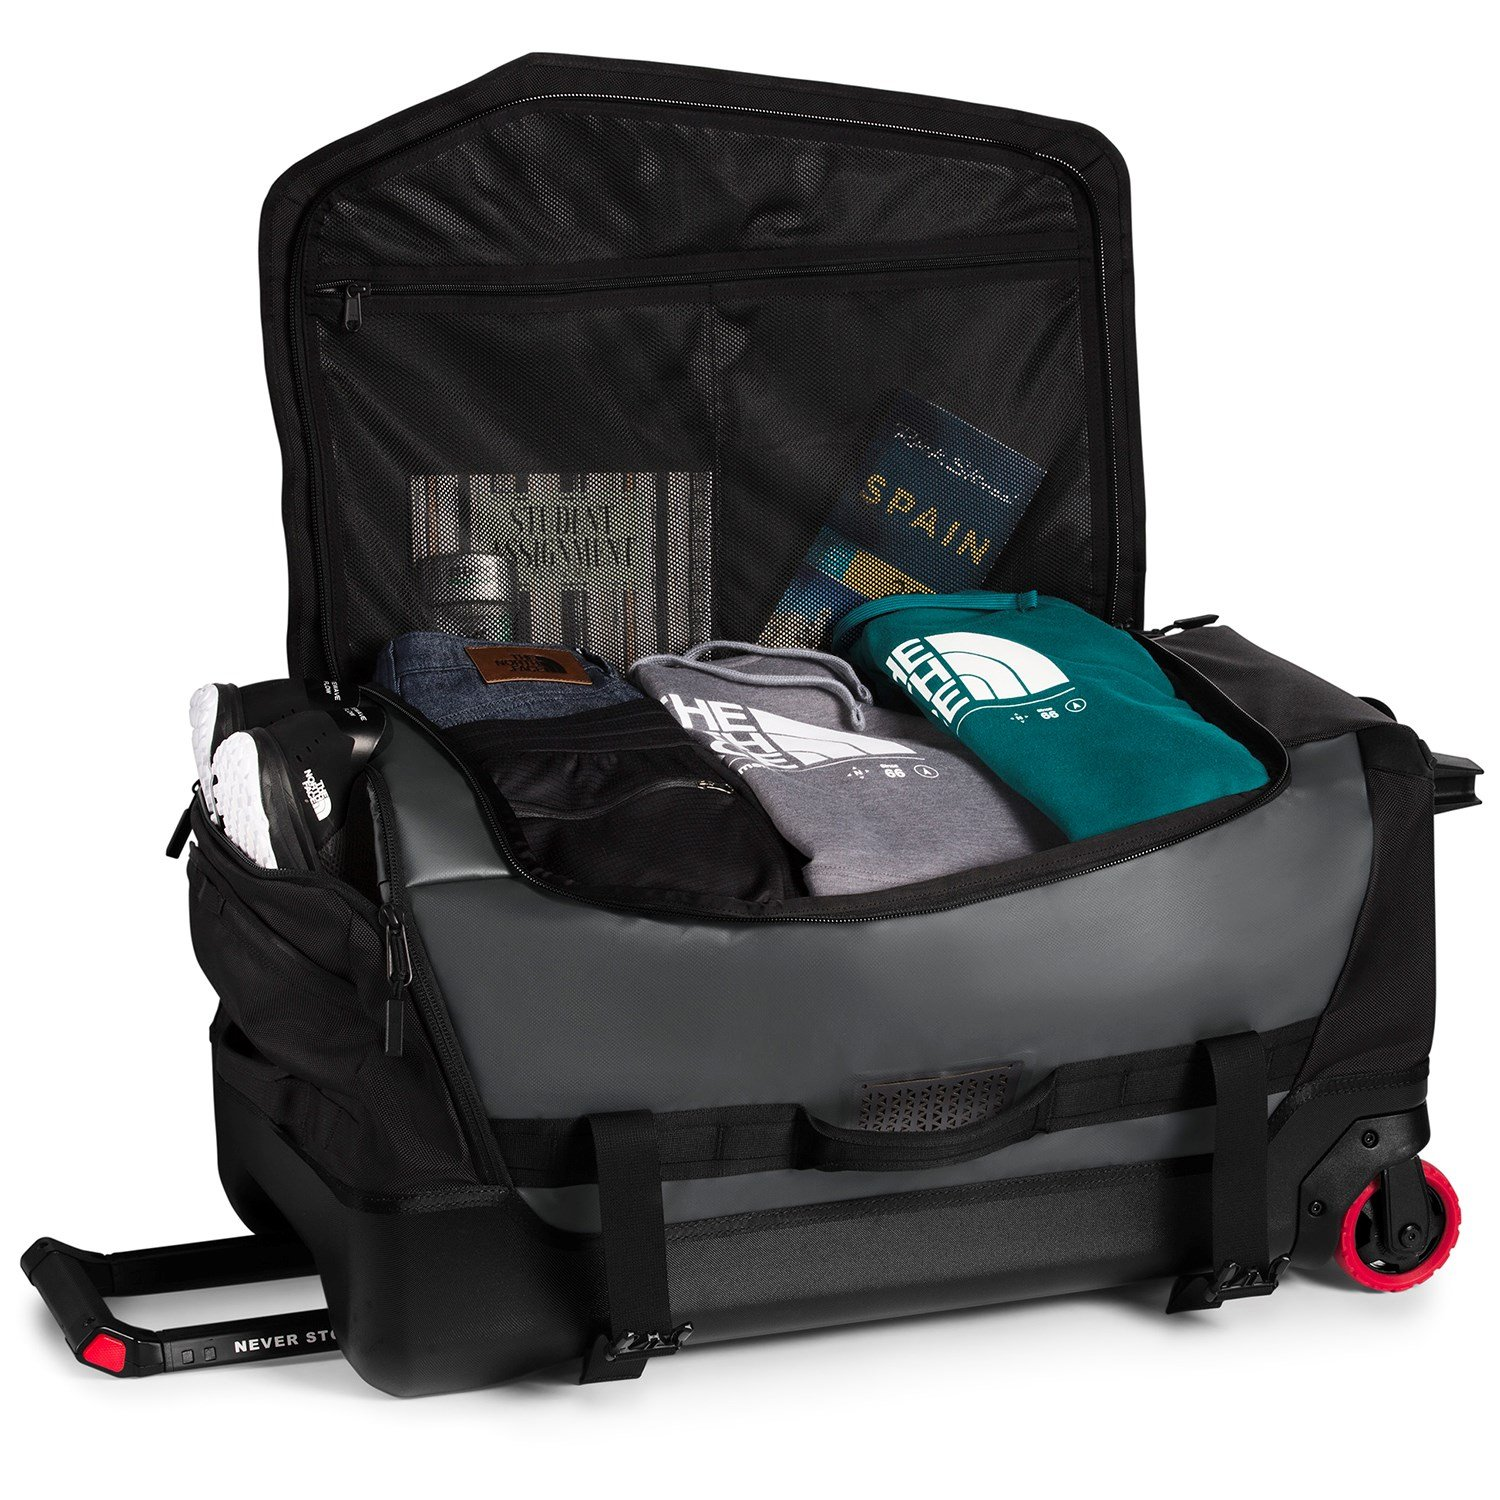 2aedeffac4a The North Face Rolling Thunder Bag - 30